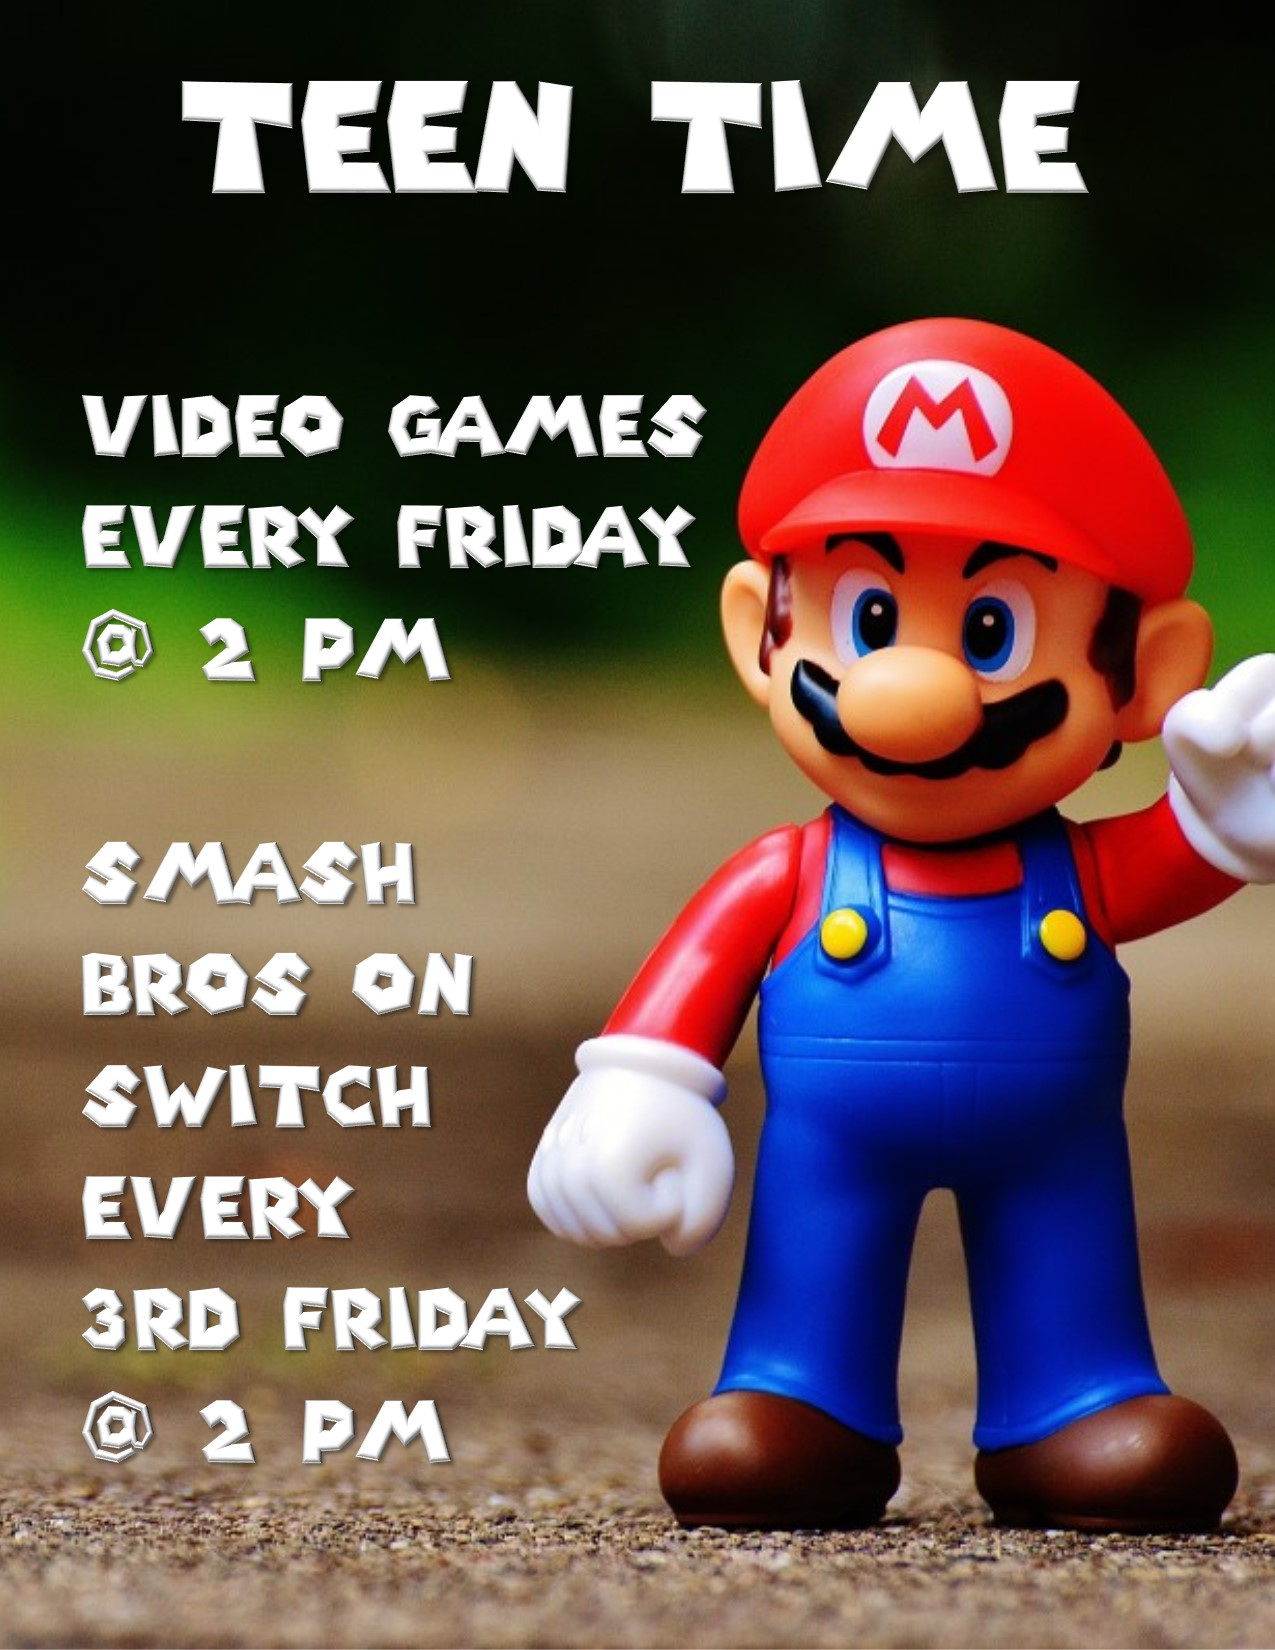 Teen Time Video Games and Smash Bros